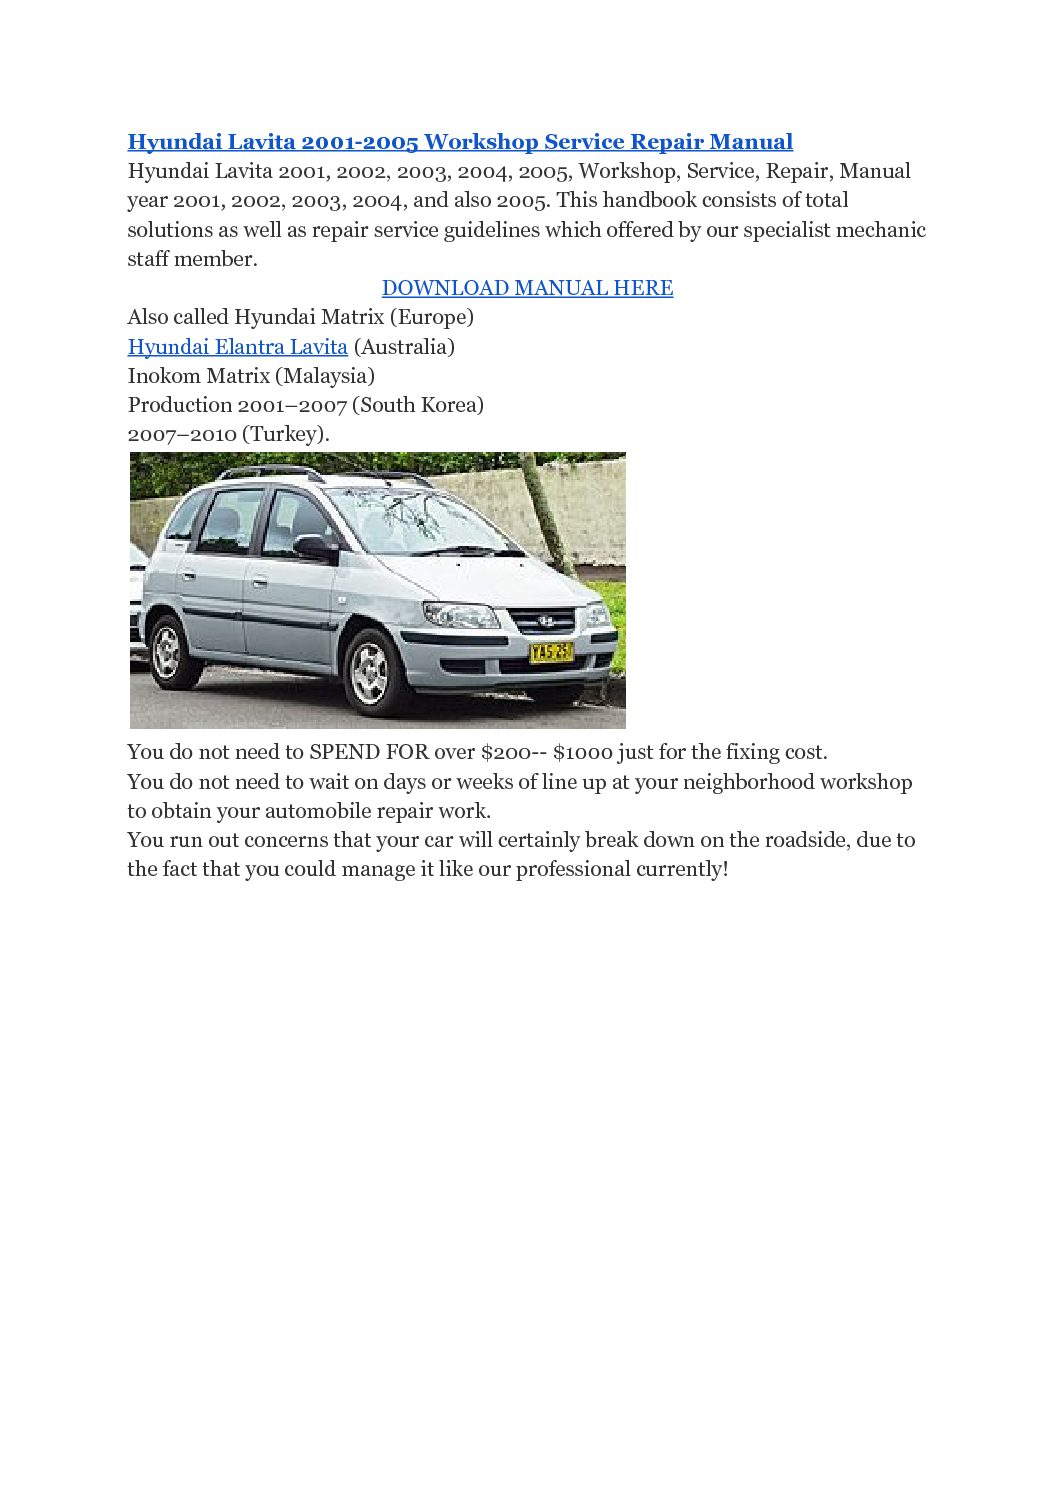 hyundai lavita 2001 2005 workshop service repair manual hyundai matrix service manual hyundai matrix shop manual